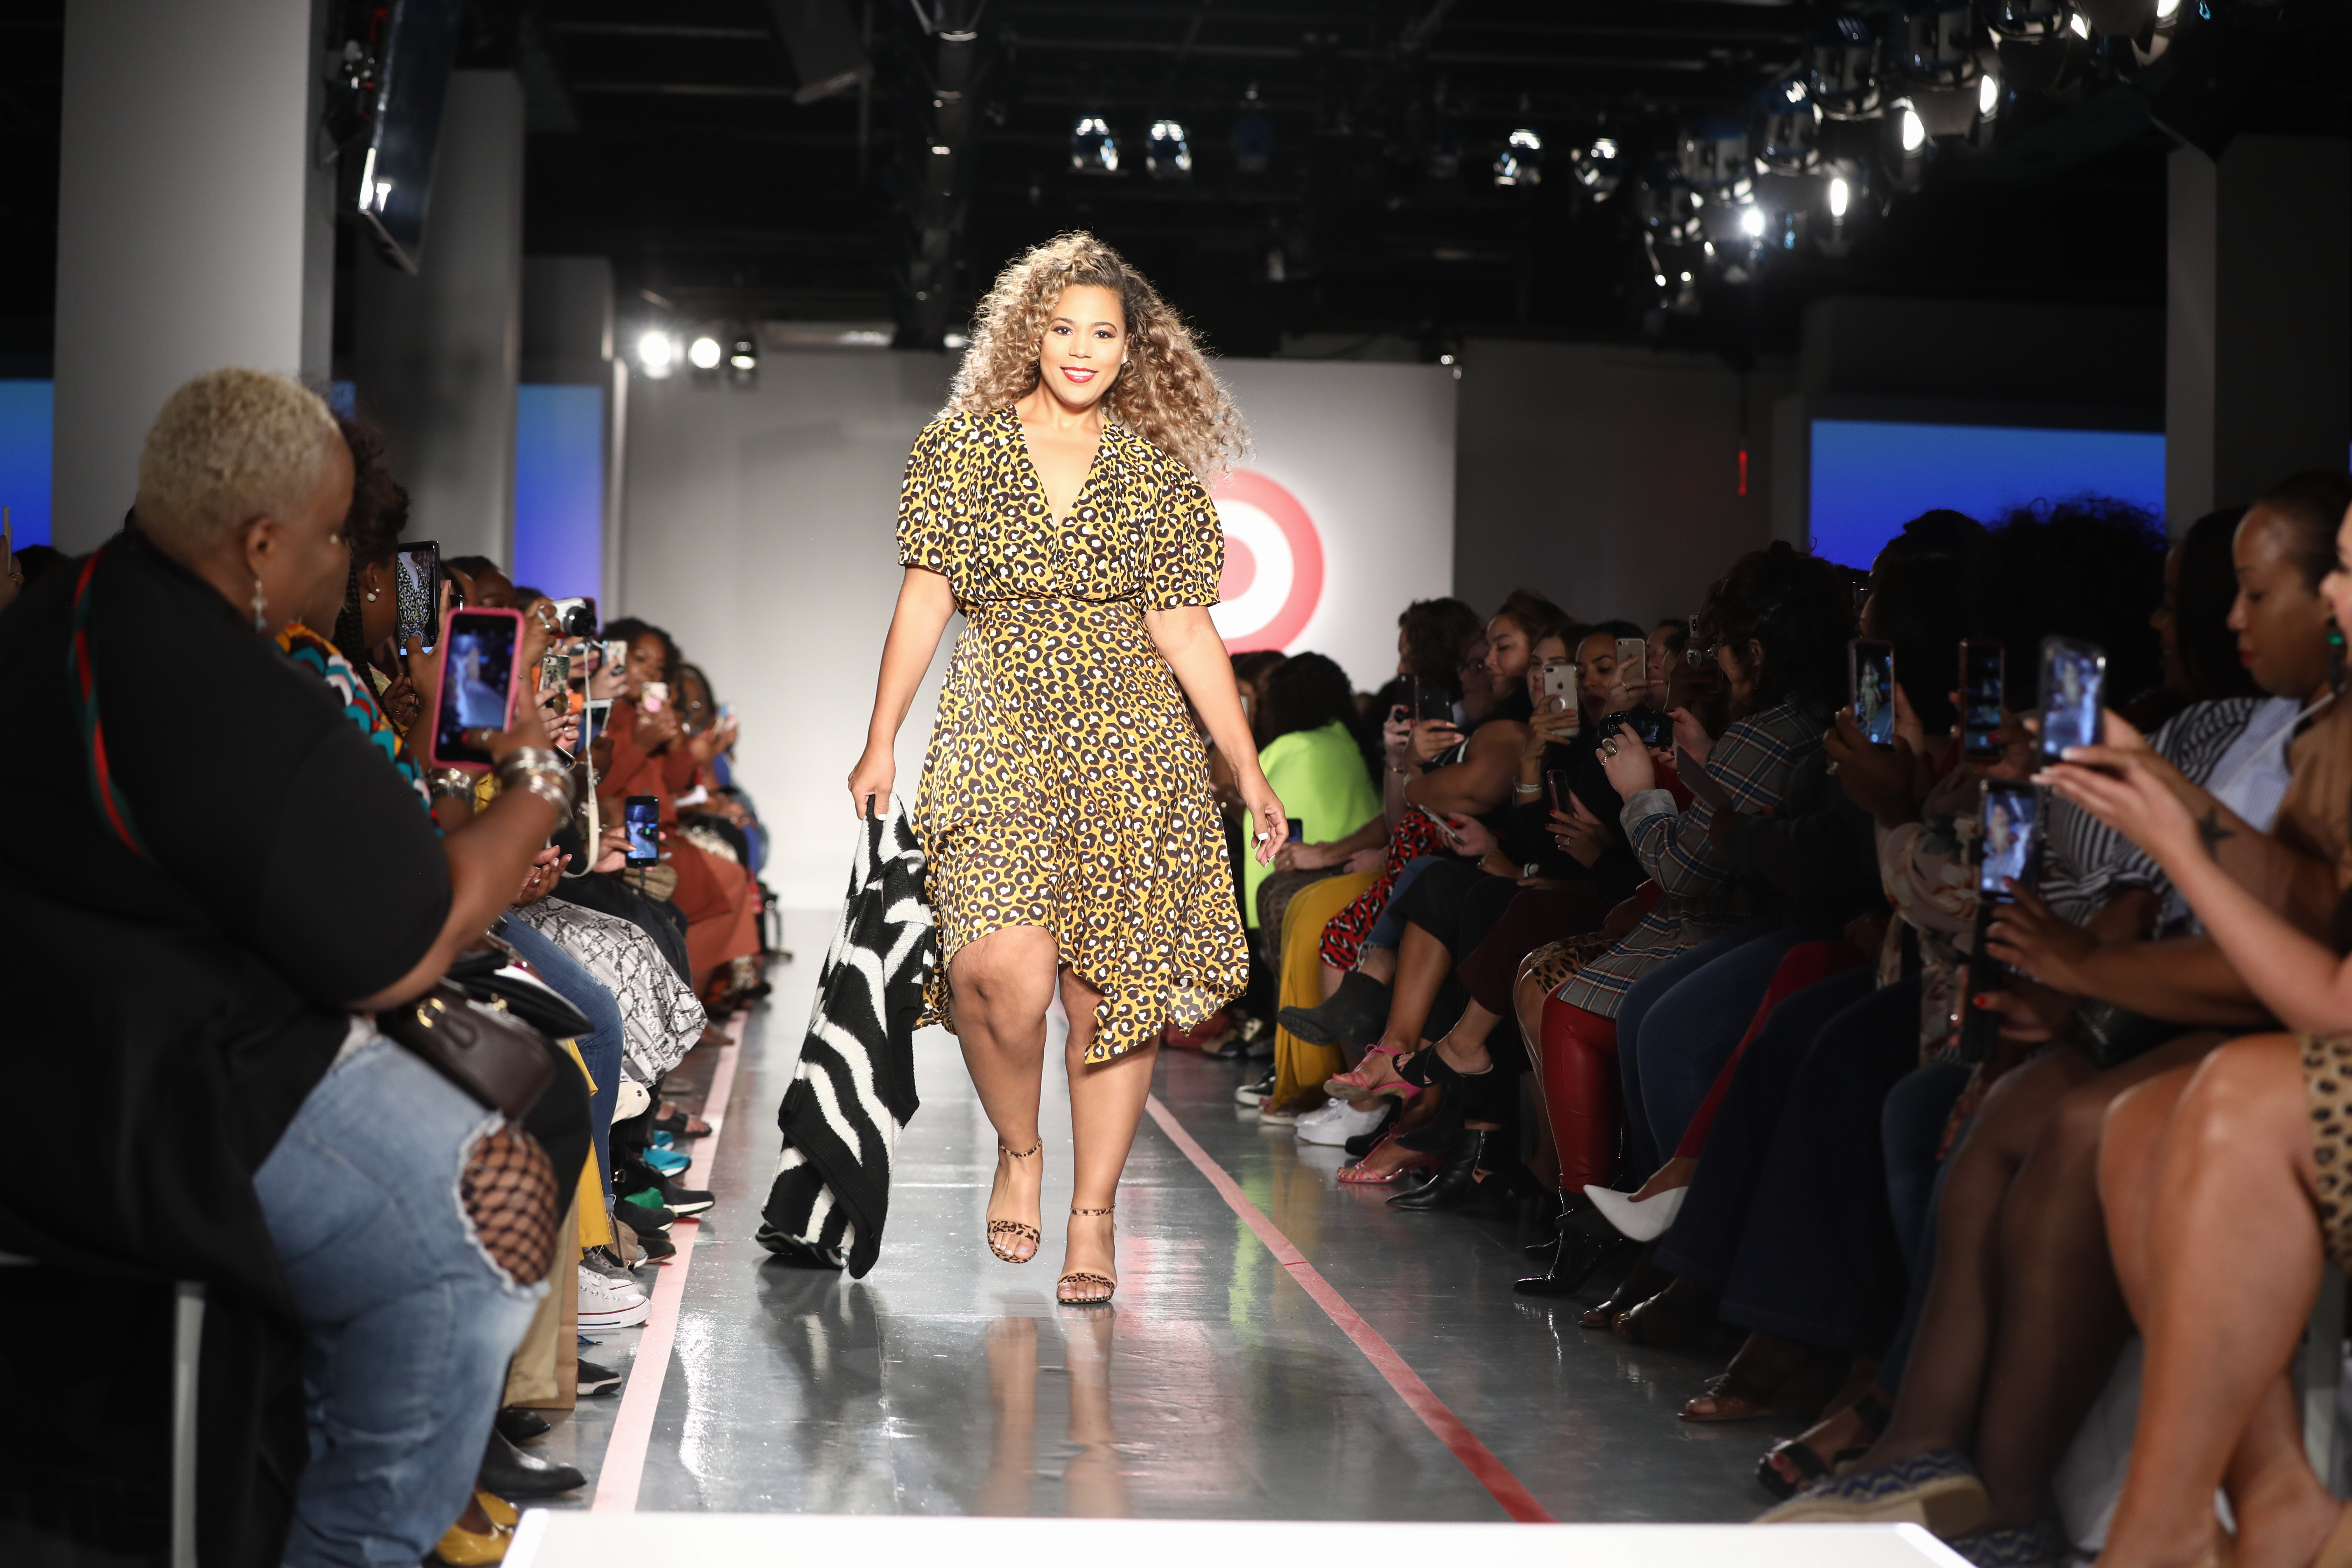 plus-size model Chastity Garner Valentine on the runway in a yellow and black leopard print dress